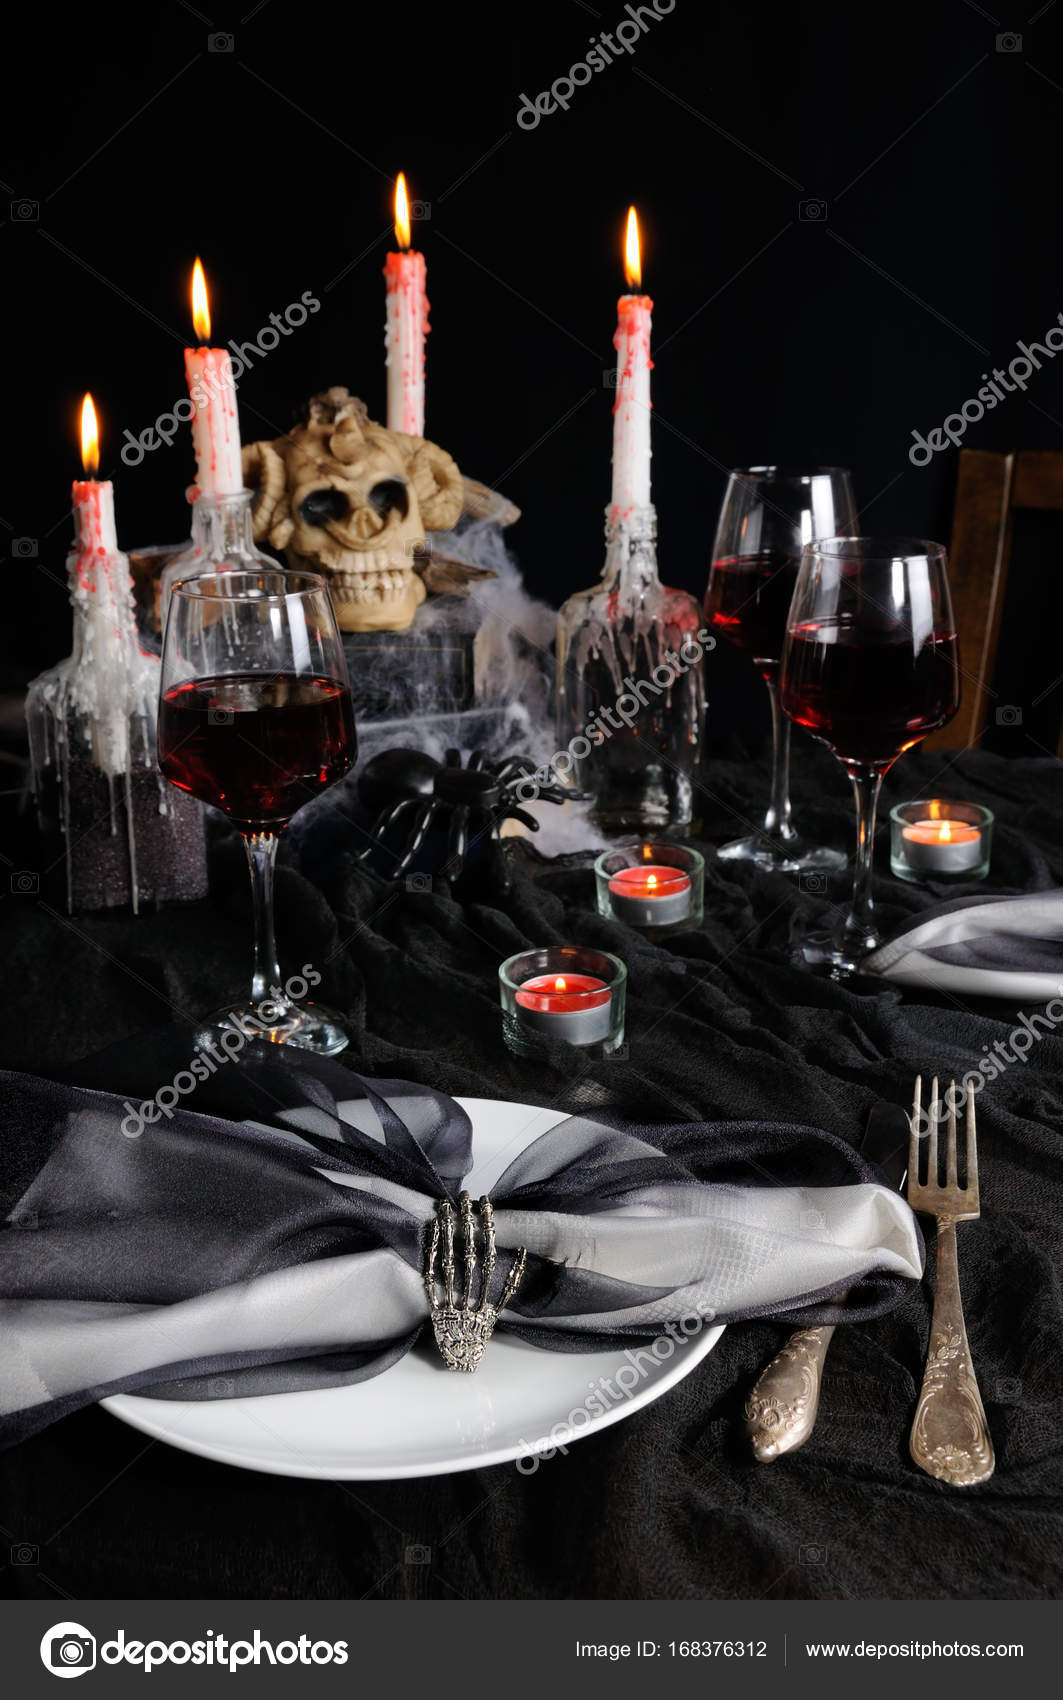 Serviette De Table Halloween Réglage De La Table Pour Halloween Photographie Apolonia